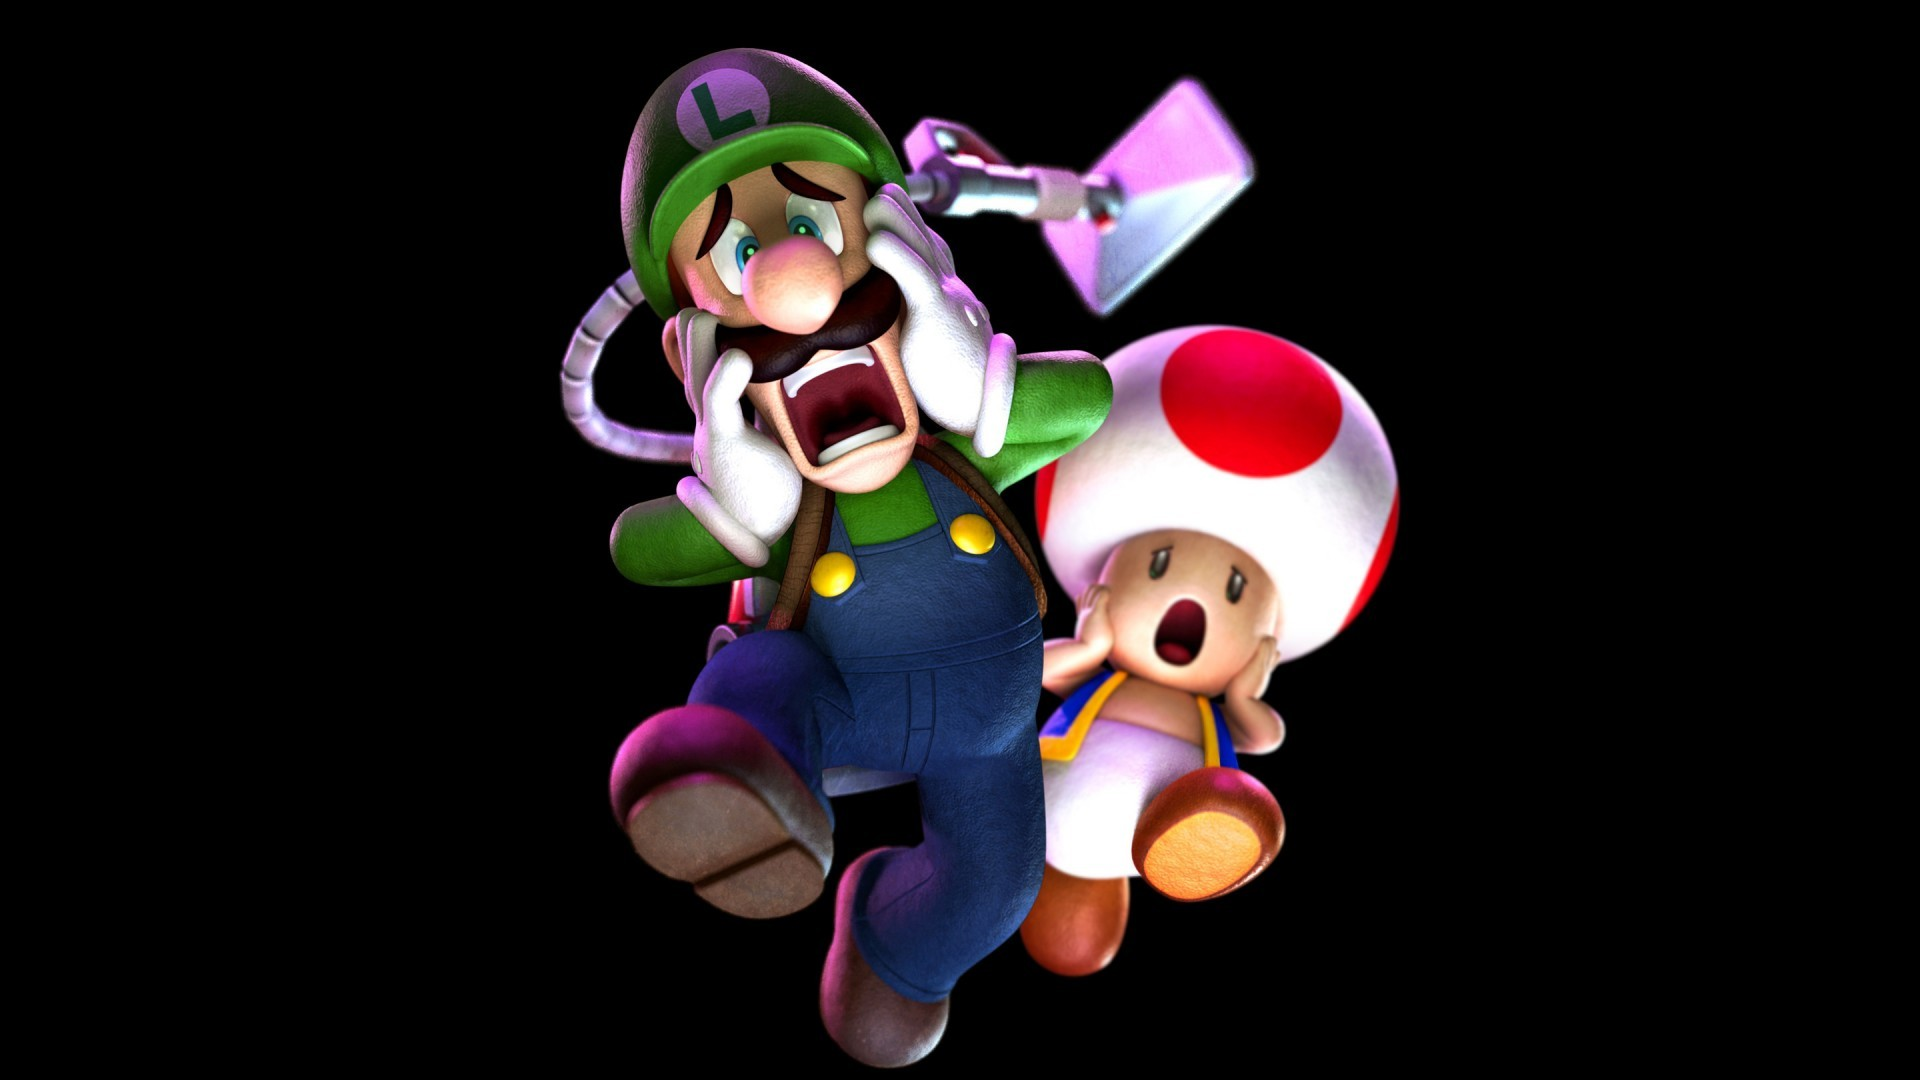 Mario and luigi background wallpapers HD.